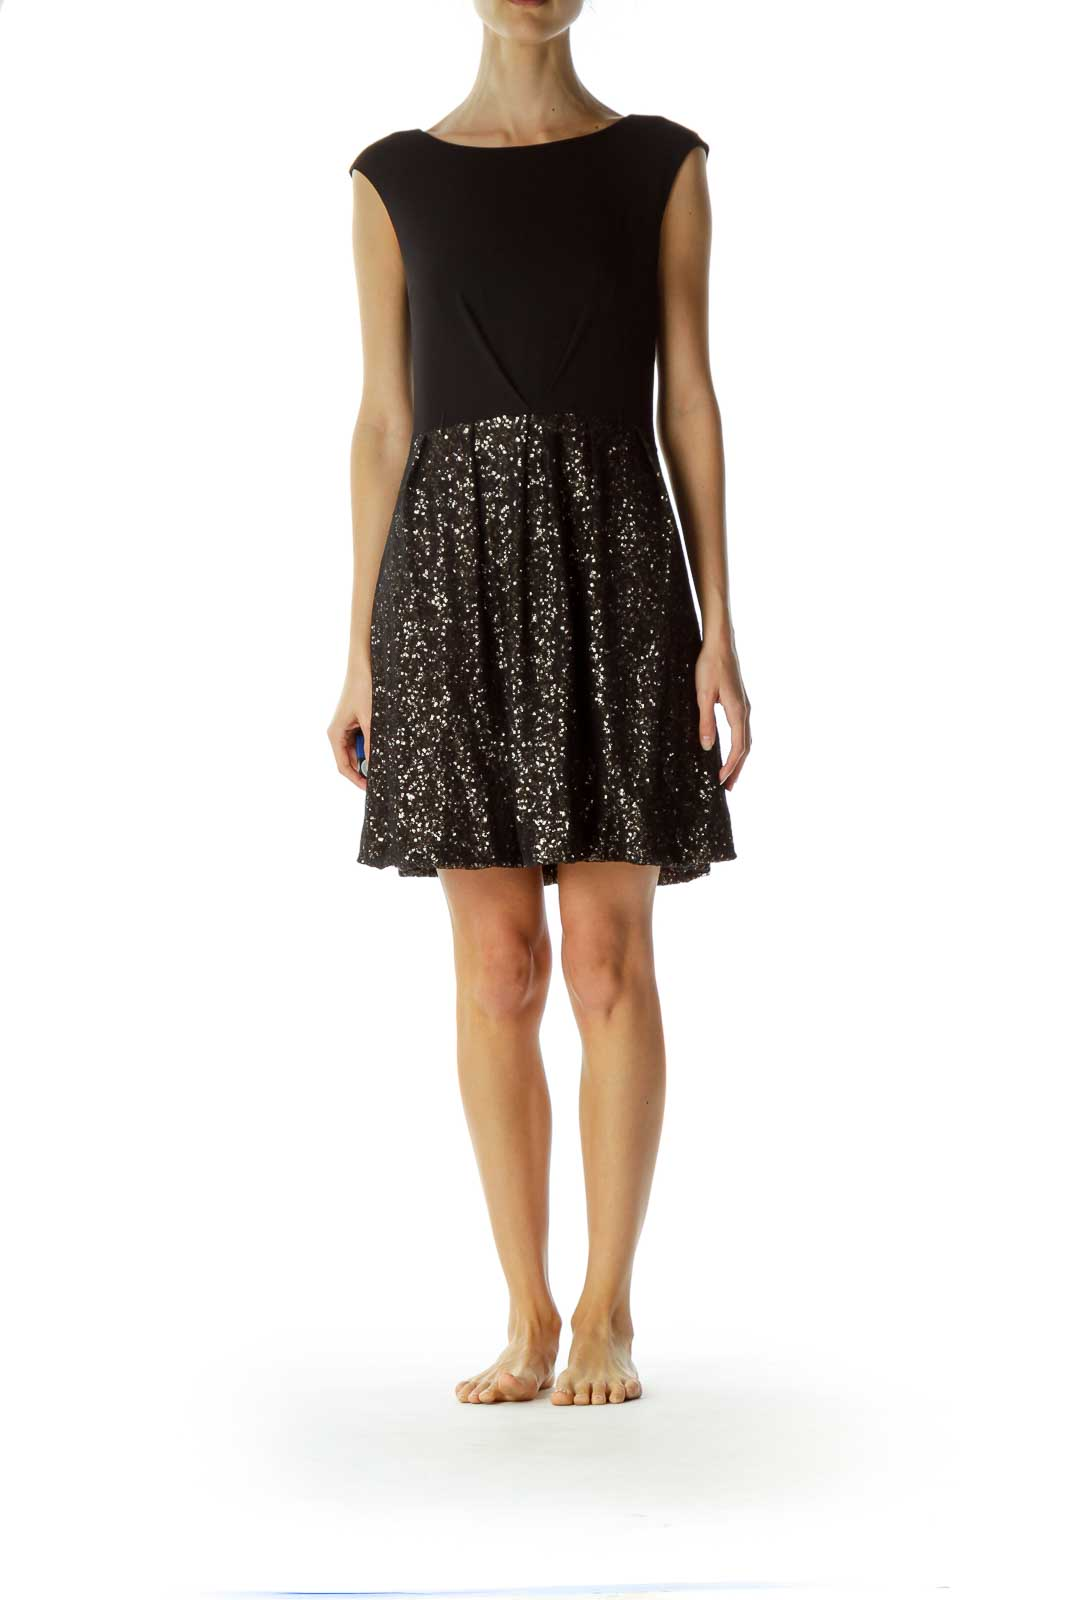 Black Gold Sequined Cocktail Dress